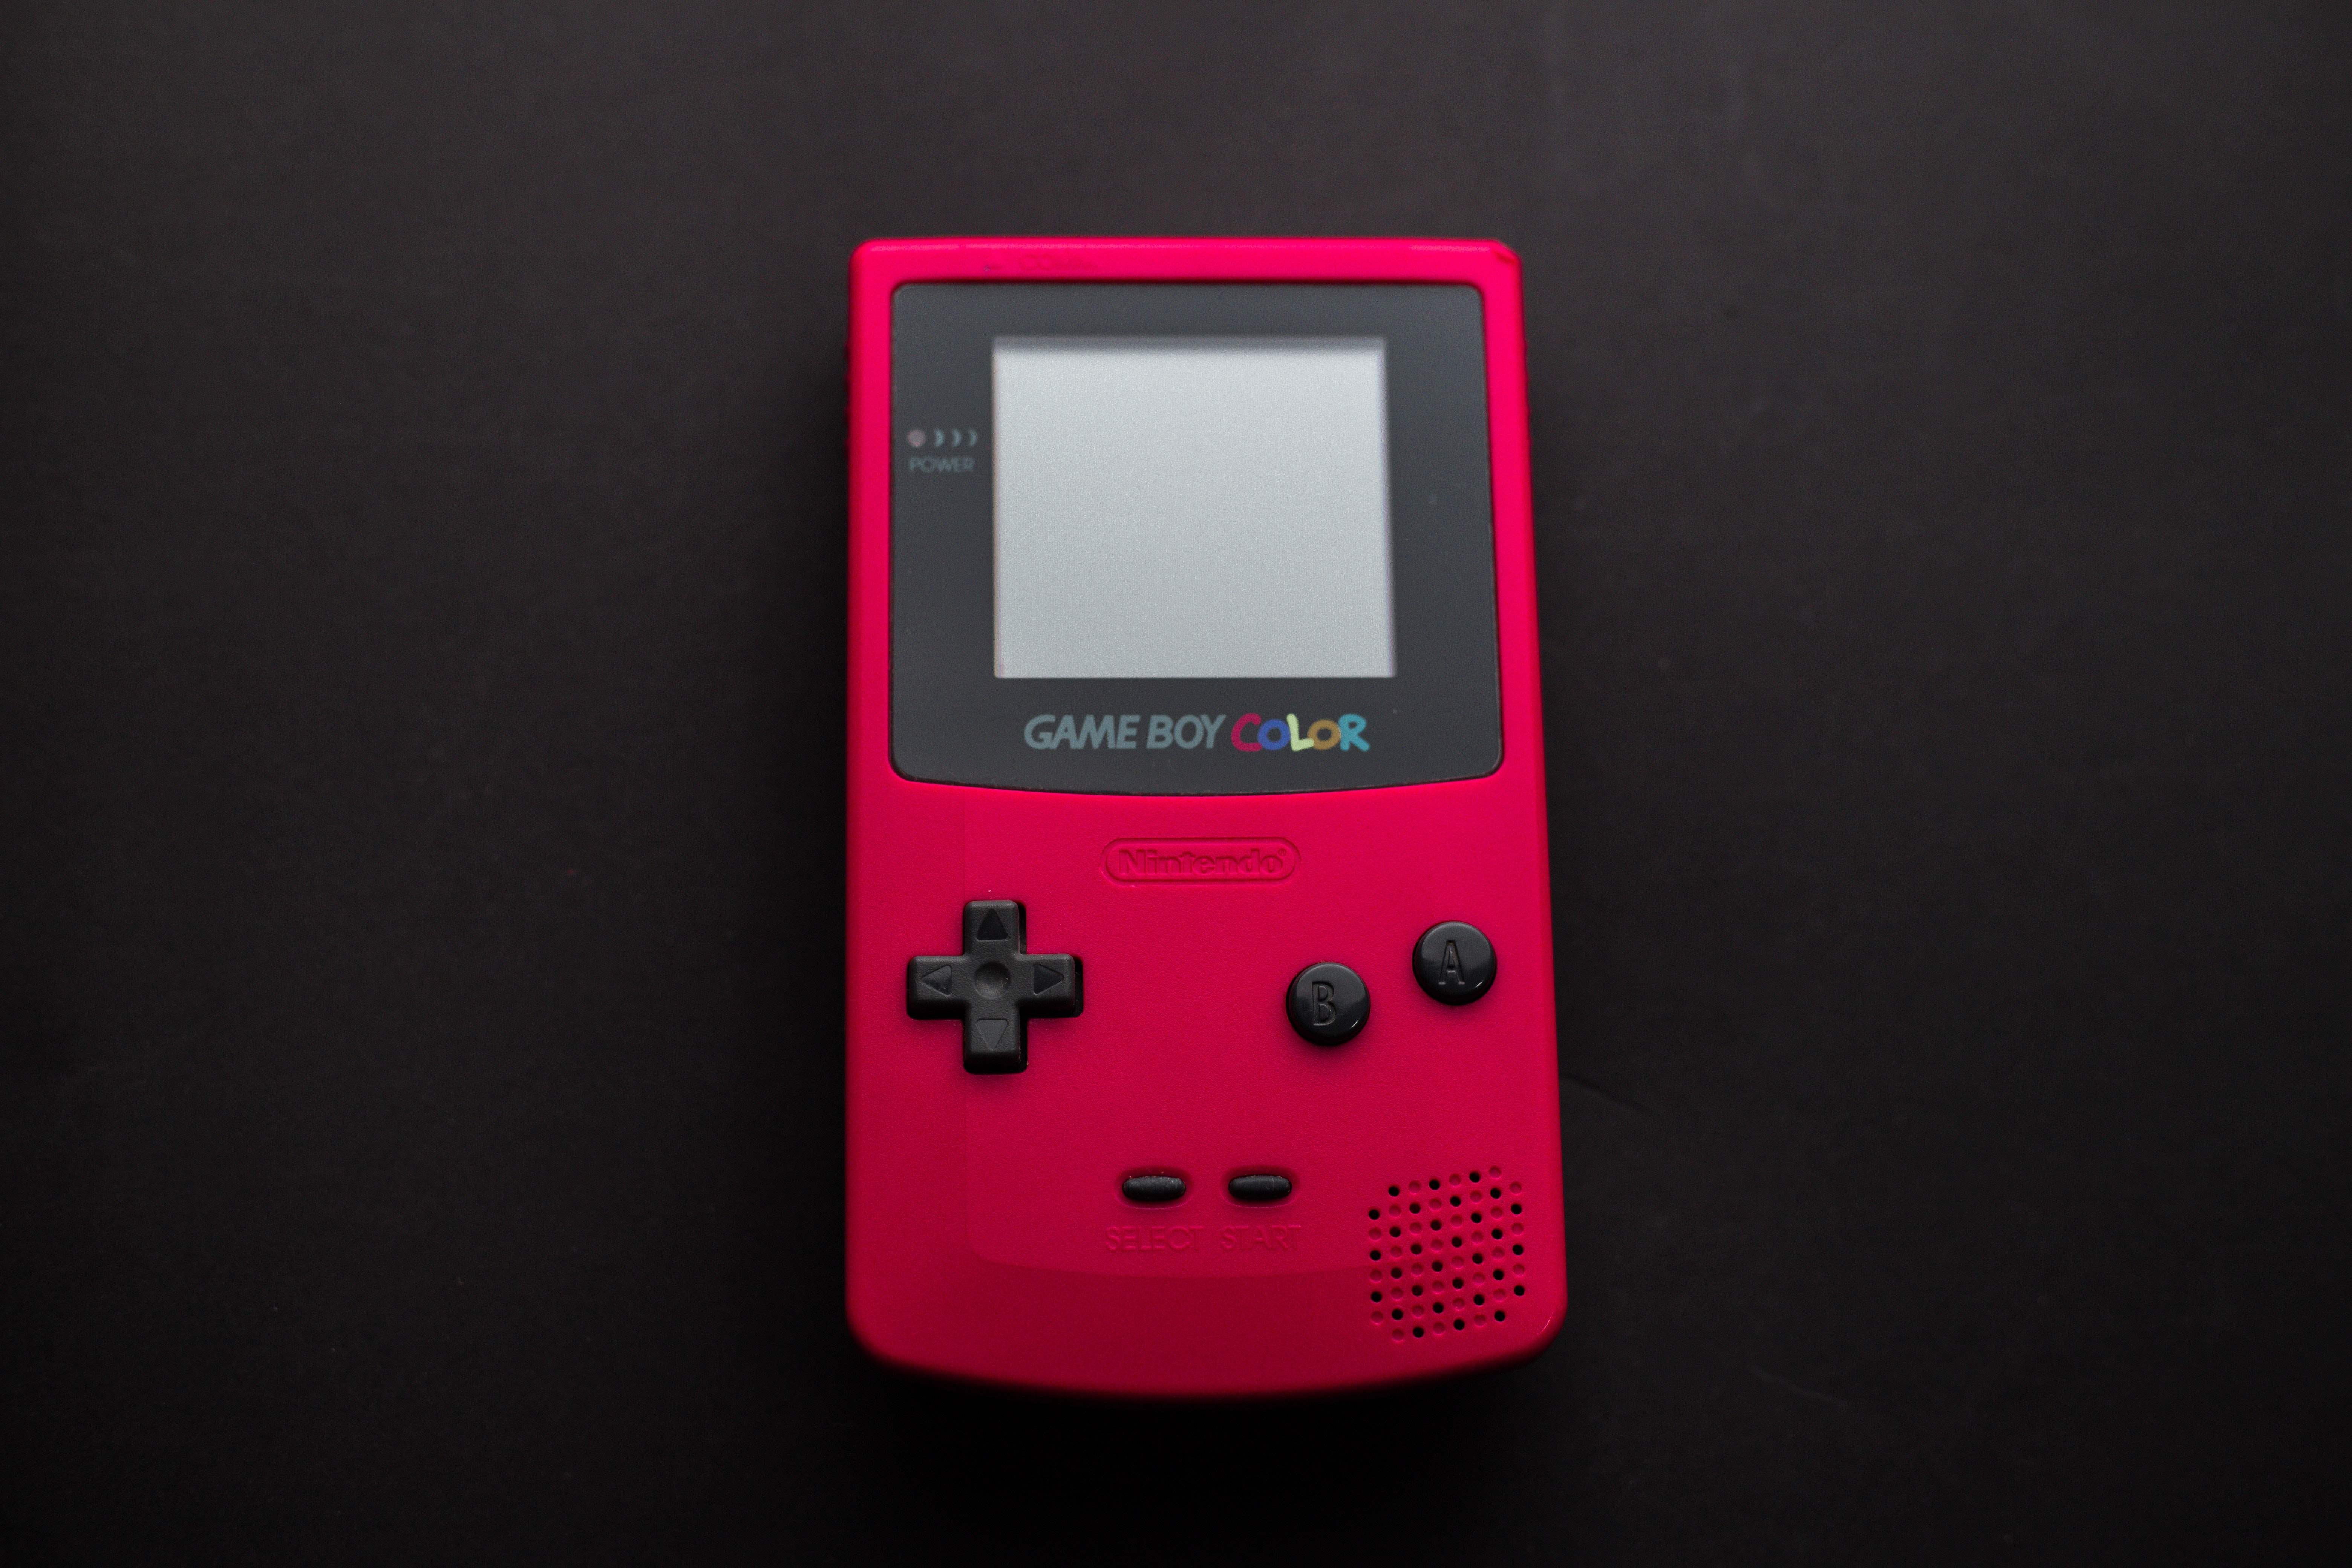 White Nintendo Game Boy with buttons in black, pink and grey colors